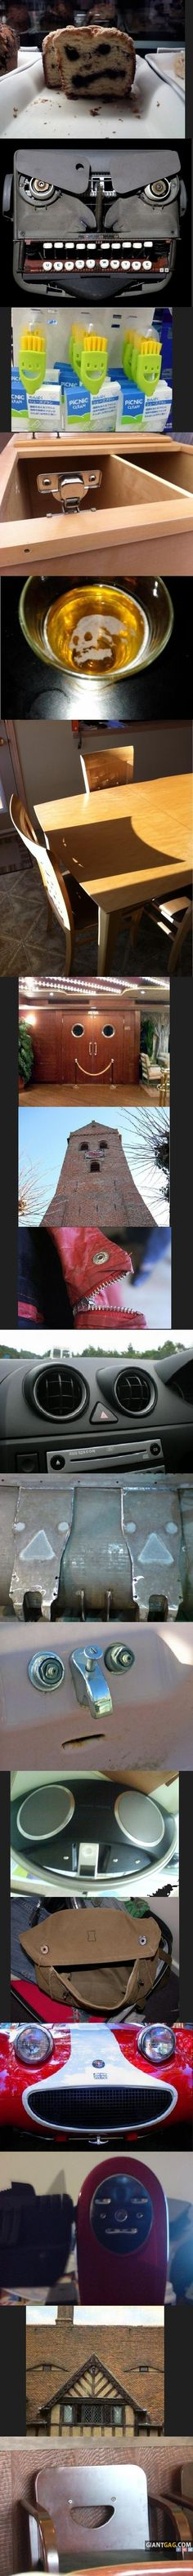 Faces Found In Objects (Compilation), Click the link to view popular images!